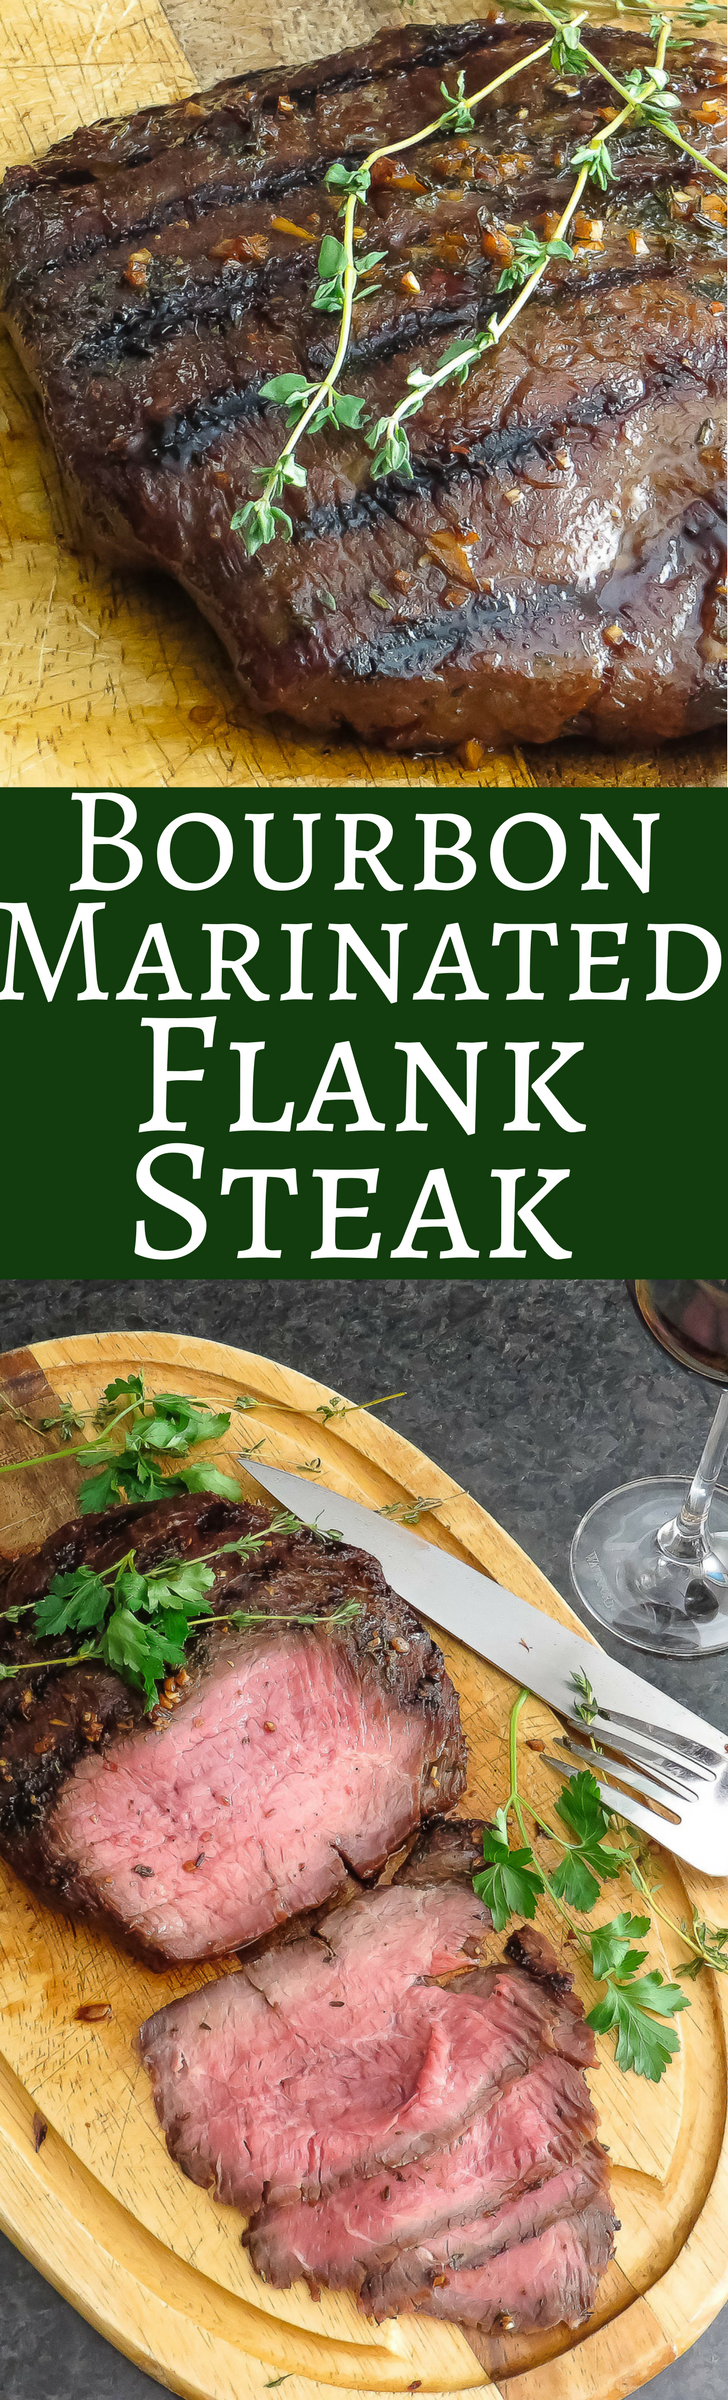 Photo of Bourbon Marinated Grilled Flank Steak